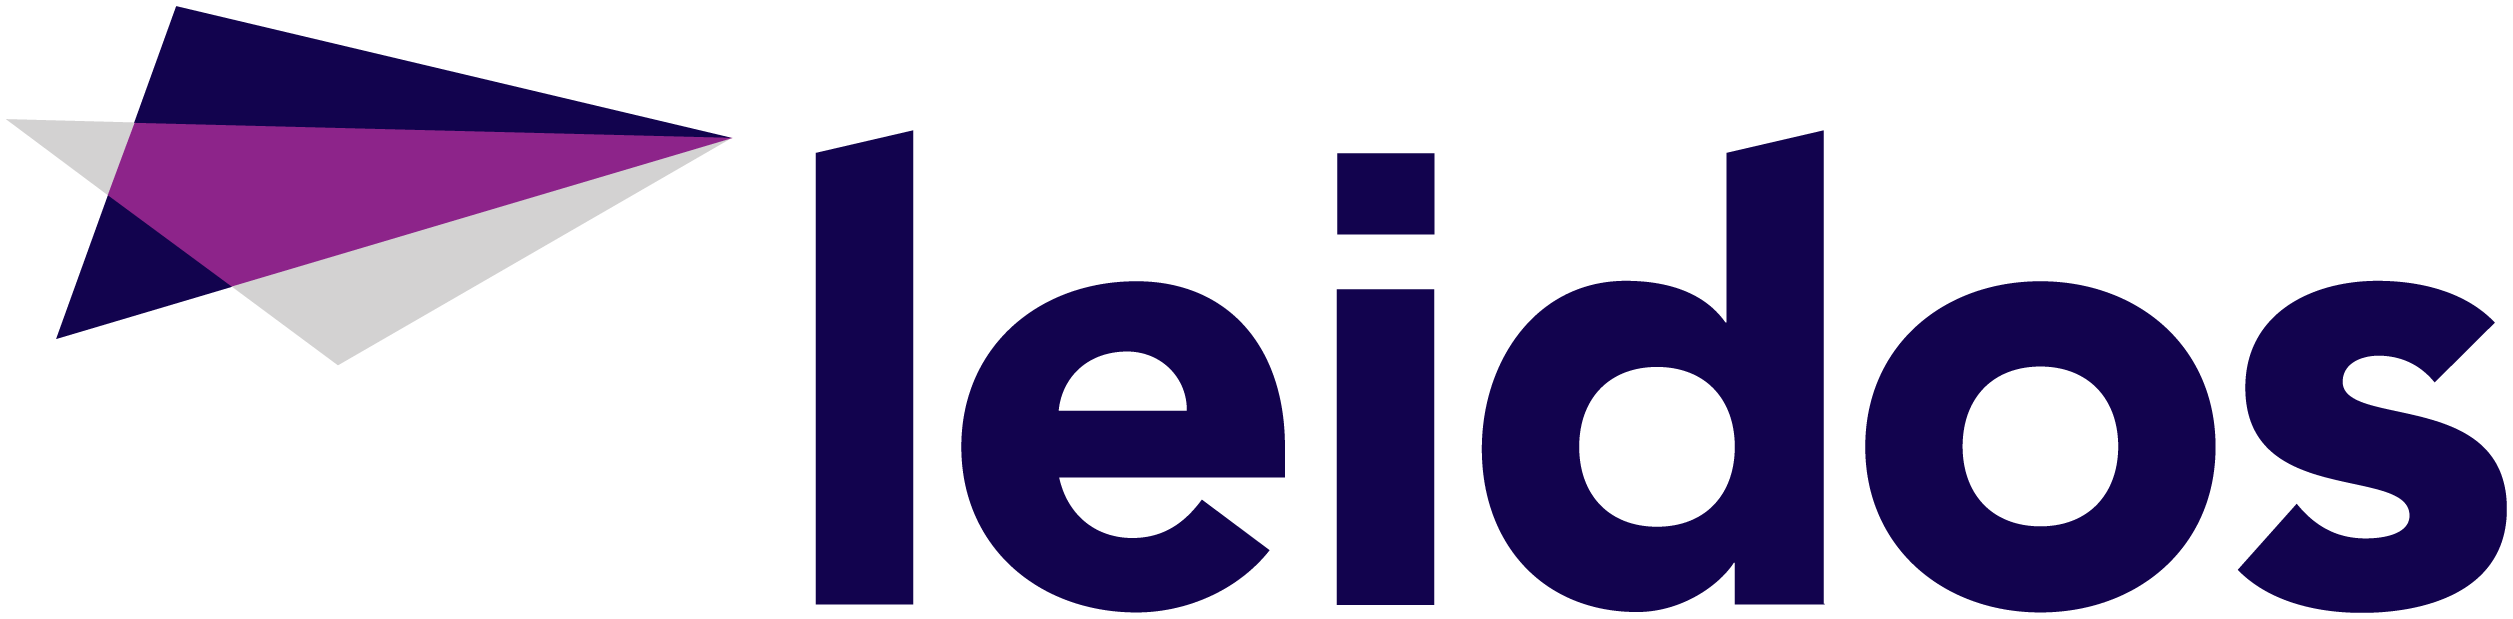 Leidos - Headline sponsor for Power of Projects 2020 - Edinburgh